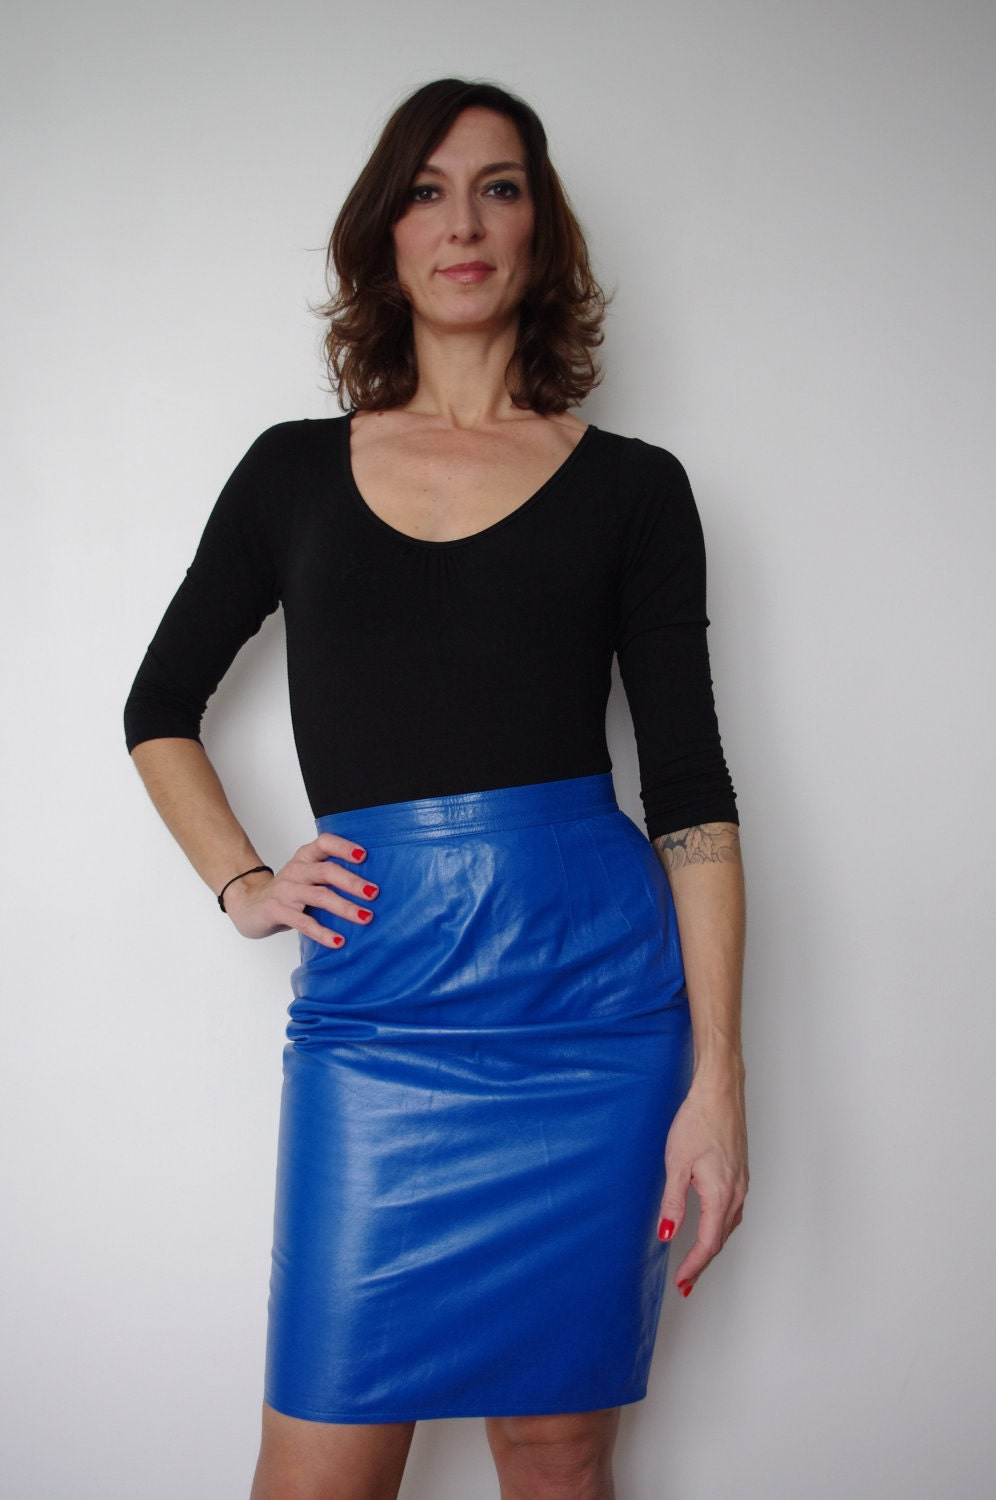 vintage 1980s ungaro electric blue leather lined skirt that